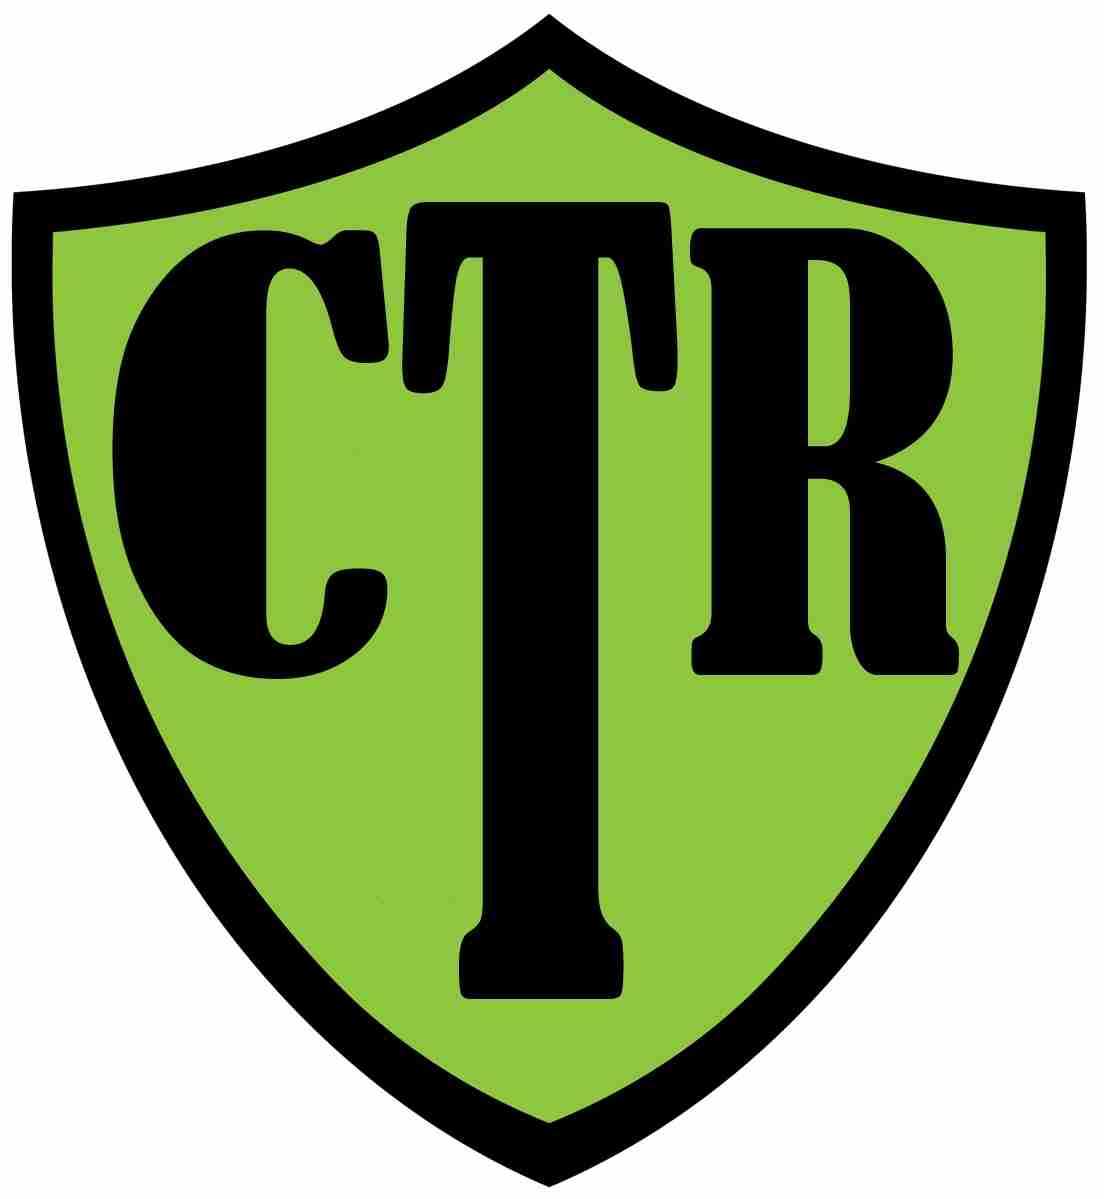 1104x1199 Ctr Shield Clip Art